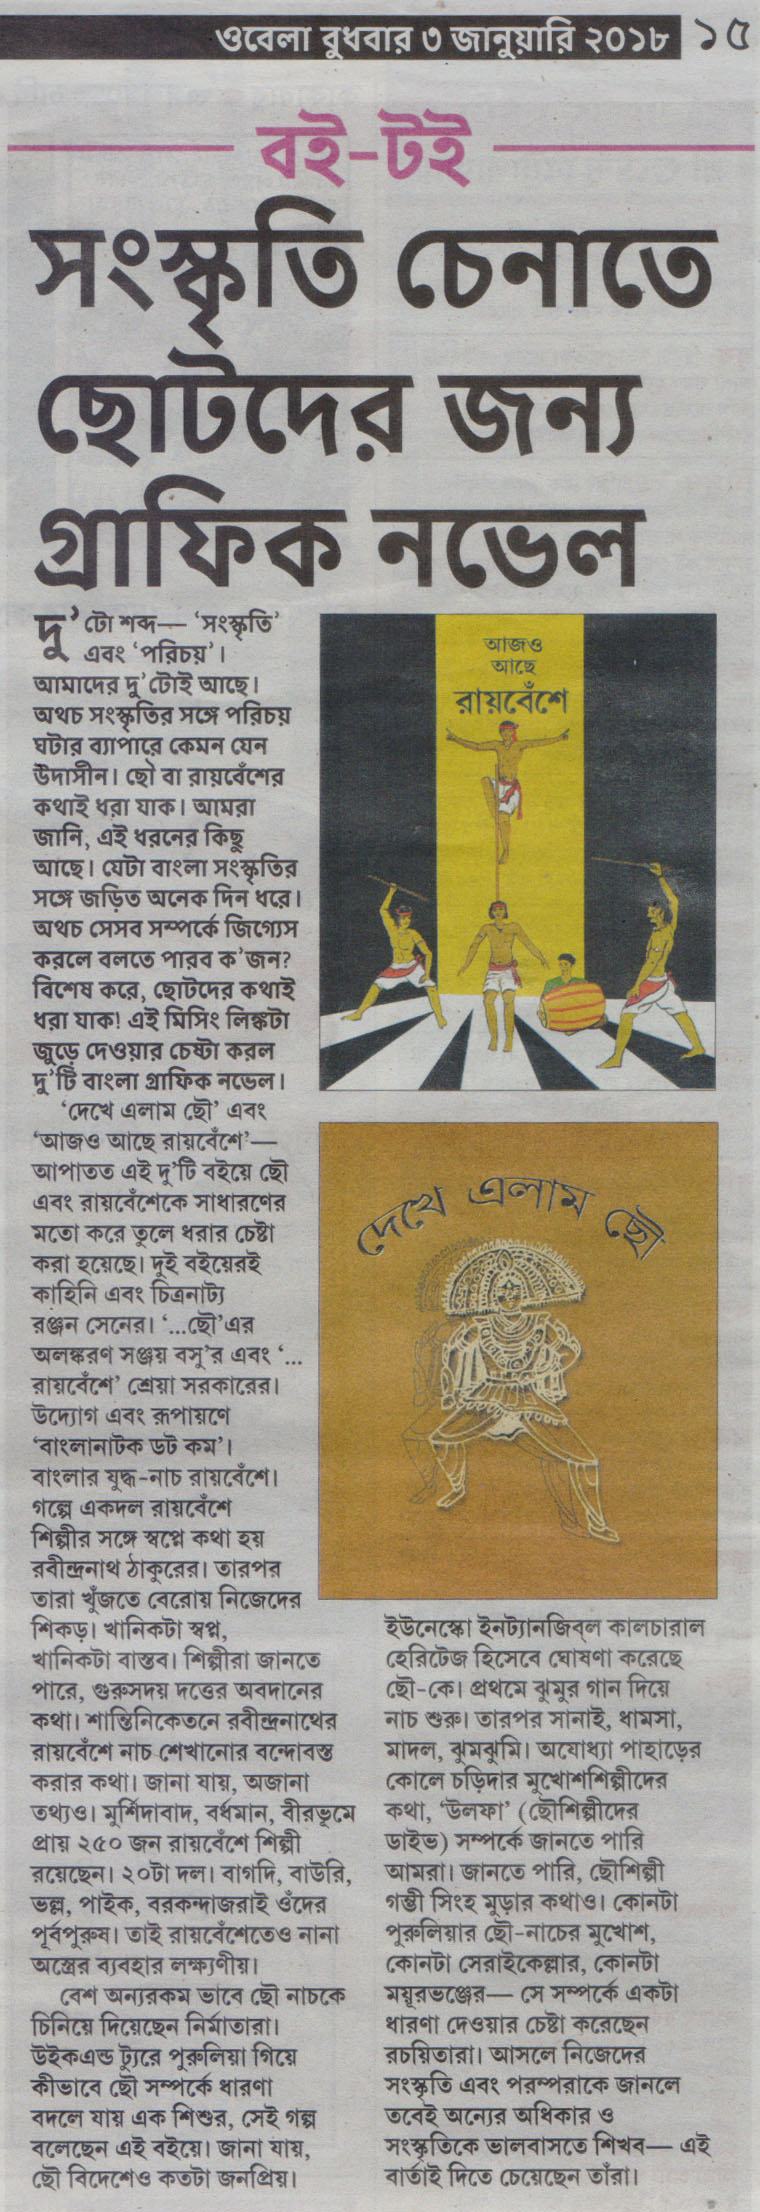 News clippings of Graphic Novel Book of Bengal Folk Culture for Children_Ebela 3 January 2018